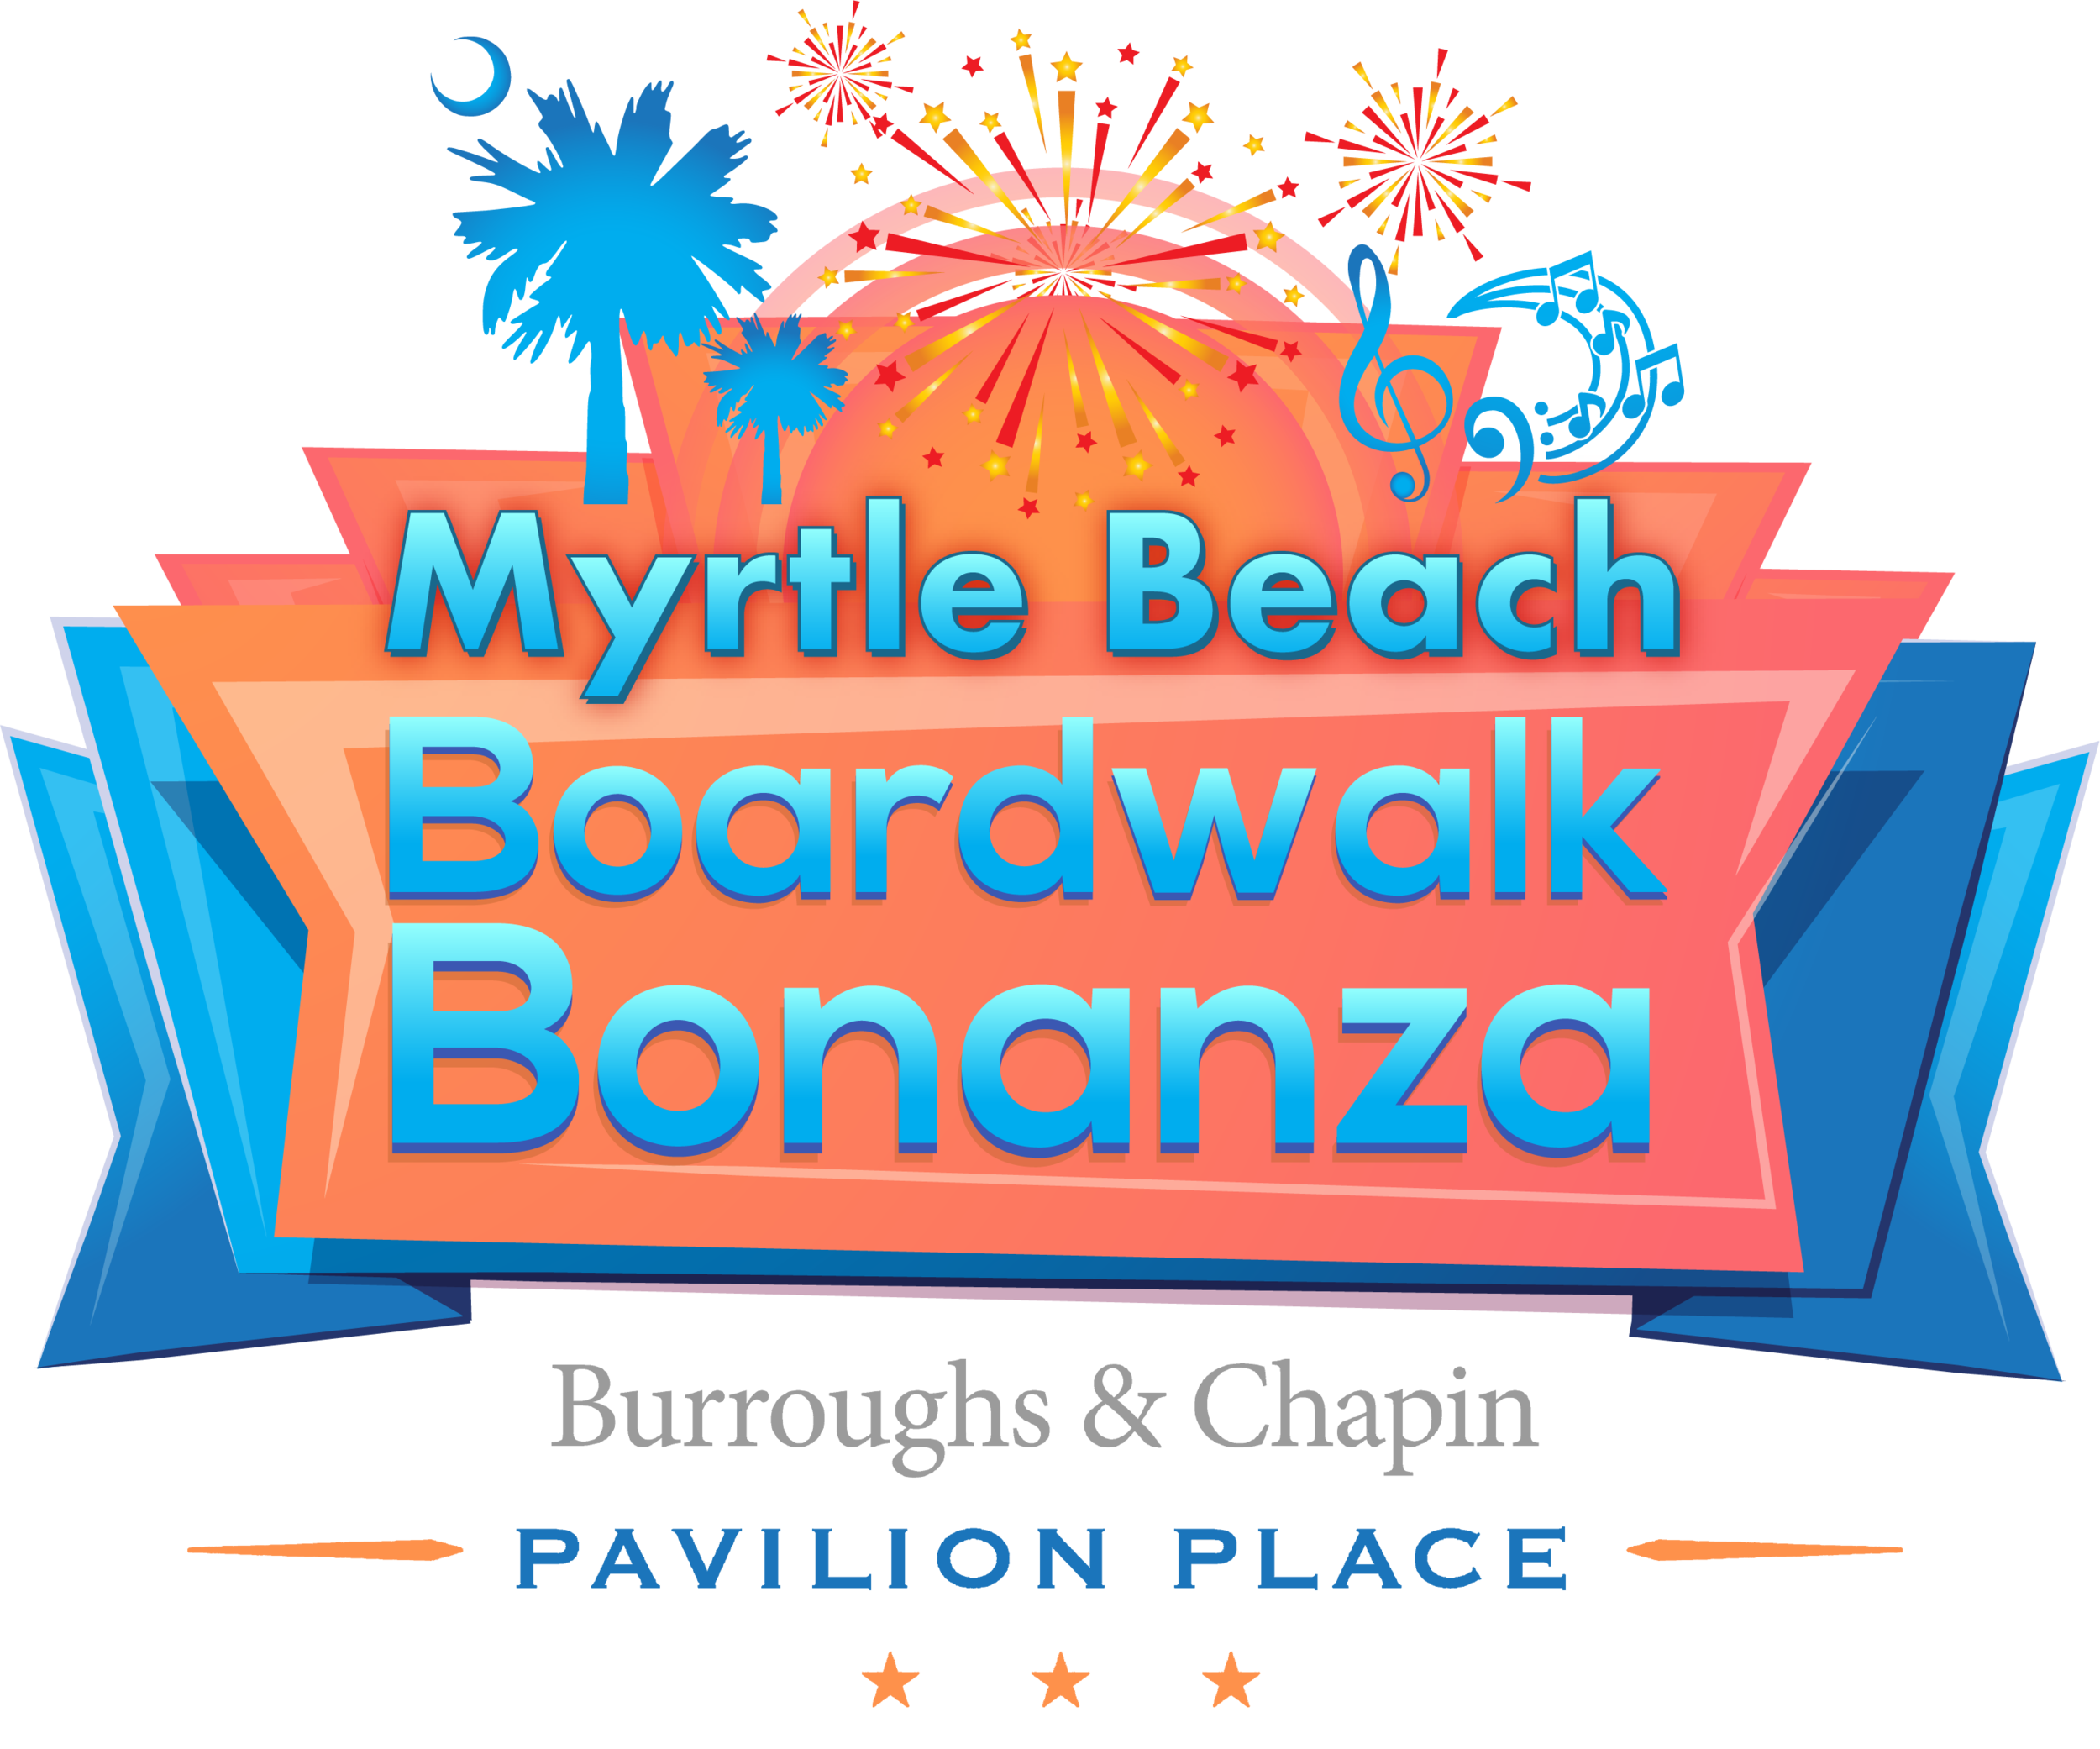 The Myrtle Beach Boardwalk Bonanza is a free family-friendly event that features live entertainment, variety shows, talent and karaoke contests, food trucks, DJ performances, a kid's activity area, games, and much more! Enjoy downtown each Wednesday and Thursday from 6-11 p.m. For event details, visit  BoardwalkBonanza.com . For more information, contact Amie Lee, Palmetto Event Productions, at 843-855-0527 or  info@palmettoeventproductions.com .